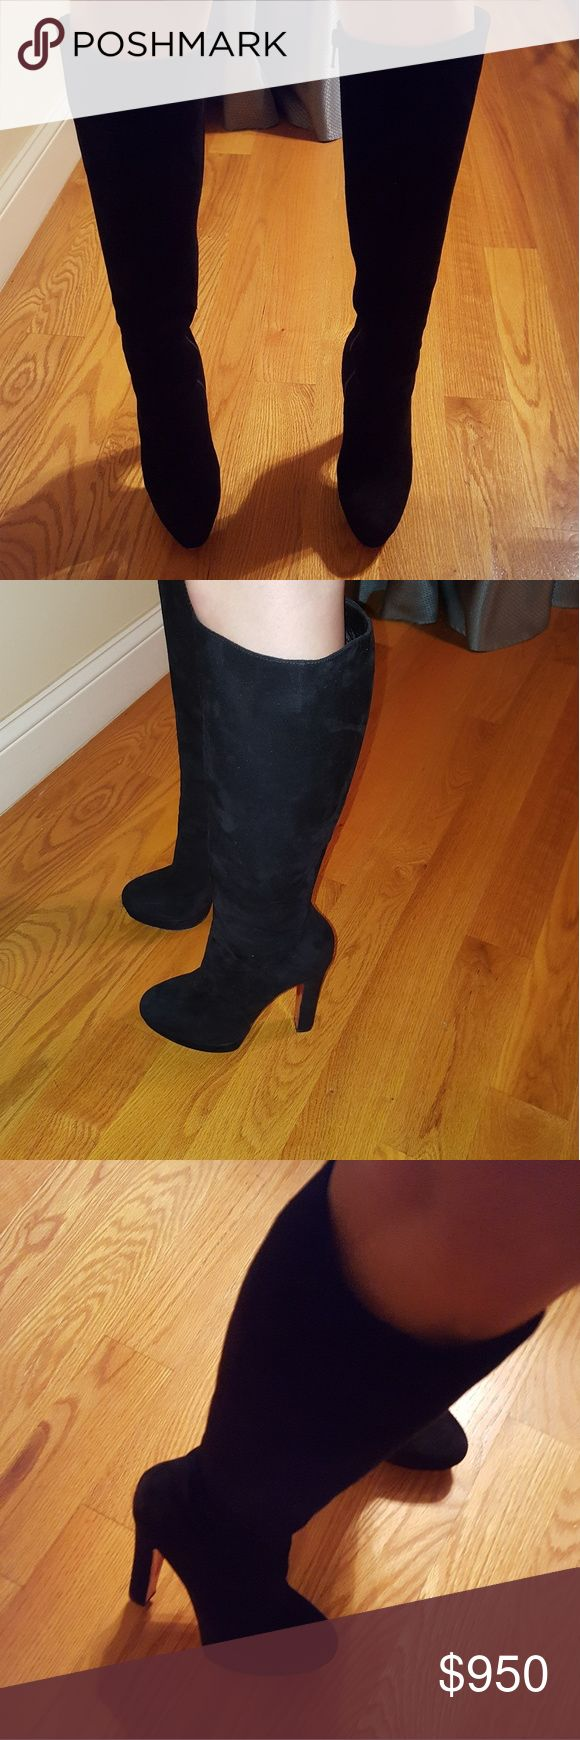 """Christian Louboutin Bibi Botta Black suede Christian Louboutin knee-high boots with round toes, tonal stitching, elastic gore at sides, covered heels and zip closure at sides. Includes box.  This designer runs a half size small.  Calf Circumference:12""""  Shaft:14""""  Heels:5""""  Platforms:1.25""""  Condition:Good. Moderate scuffs at soles; minor scuffs throughout leather. Christian Louboutin Shoes Heeled Boots"""